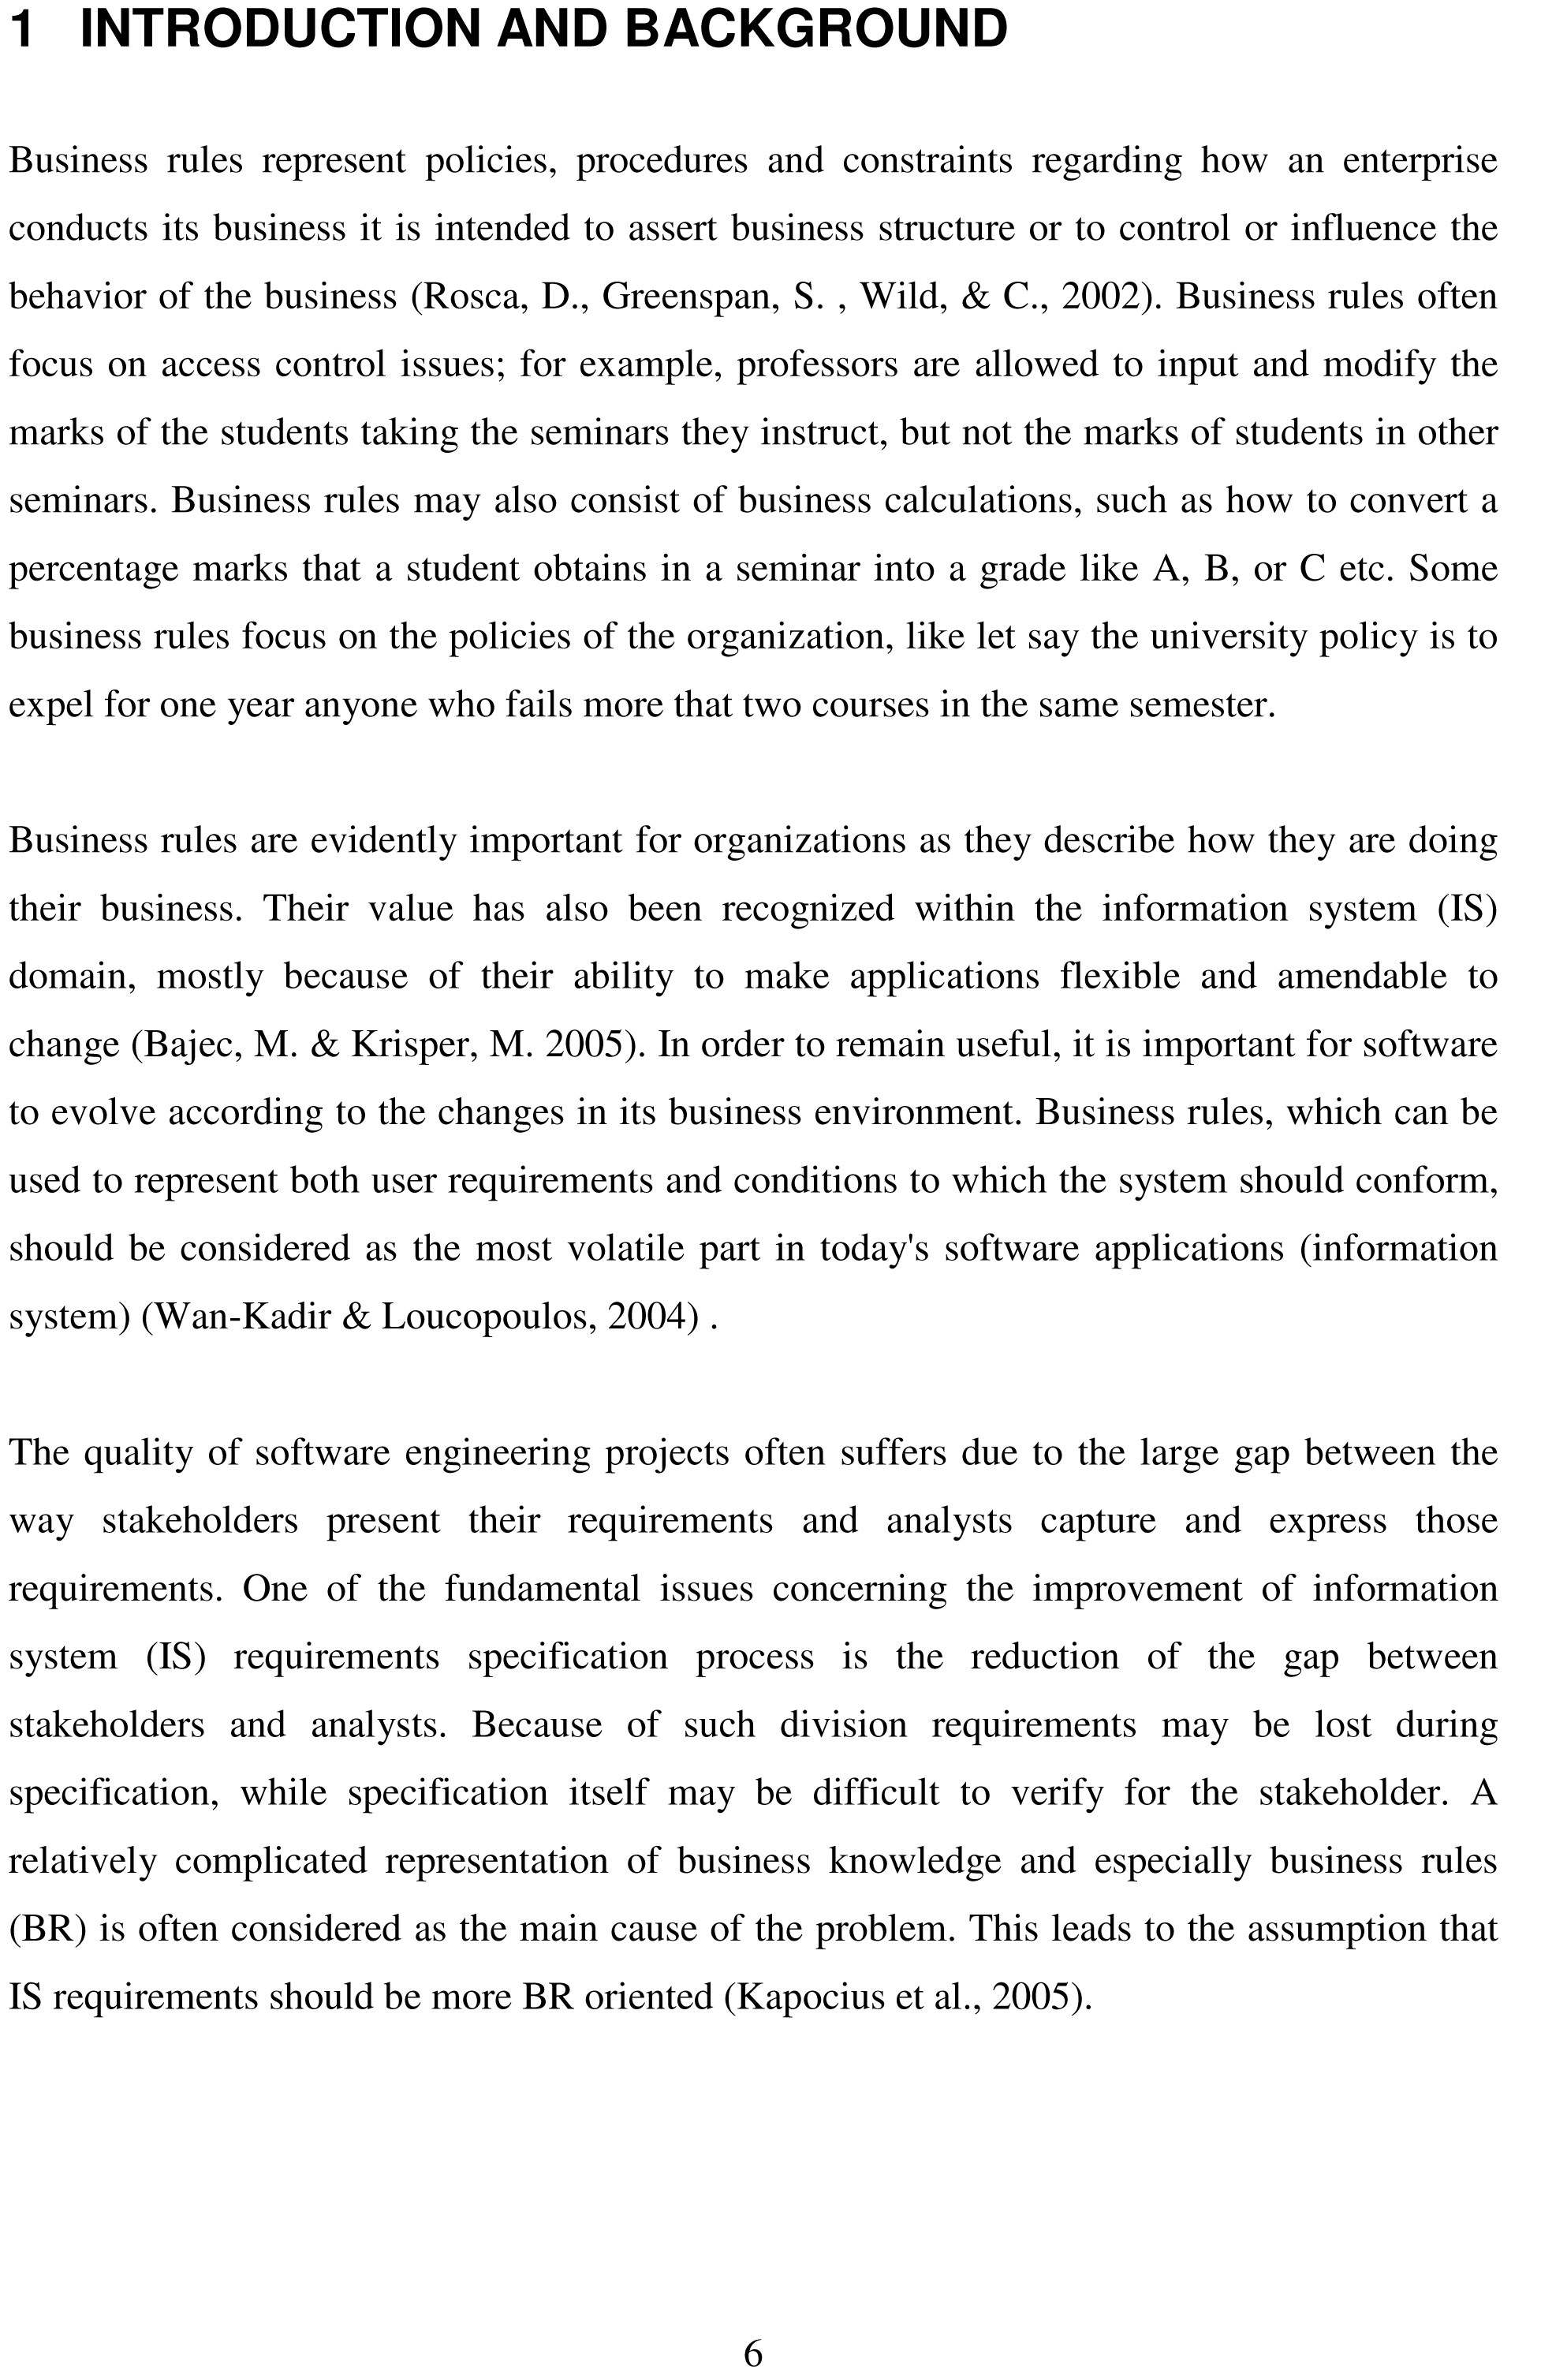 015 Research Paper Quality Thesis Free Sample Argumentative Topics On Singular Literature Full